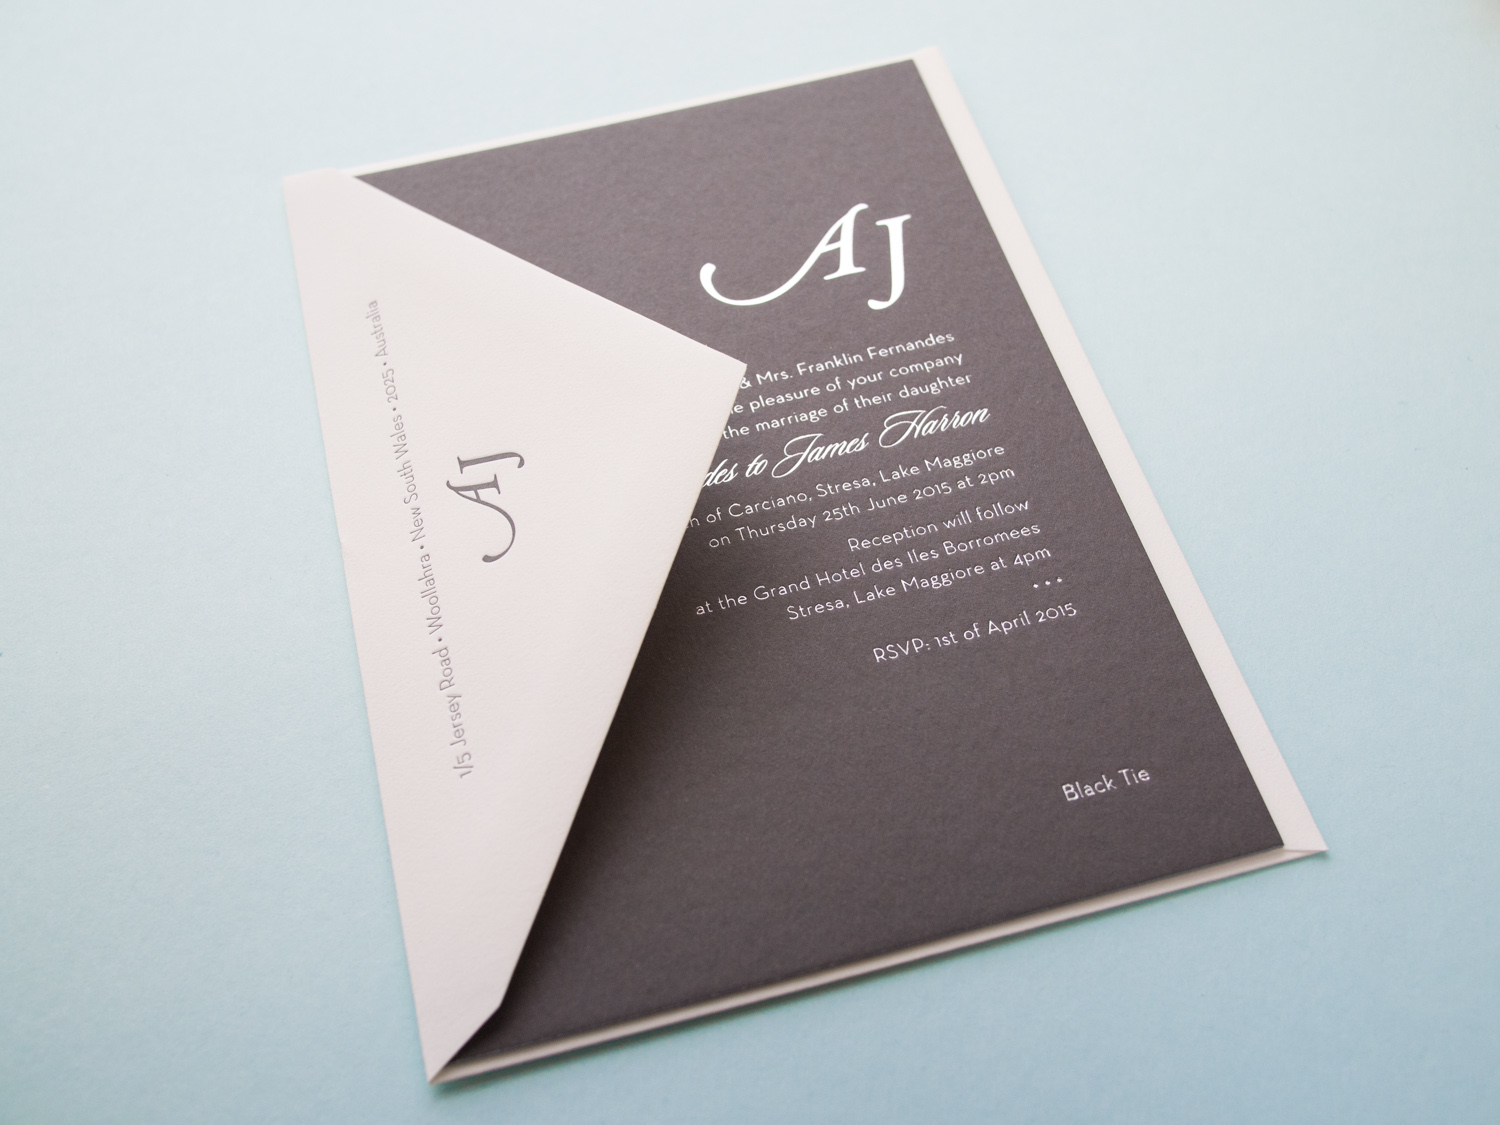 Monogram Foil Invitation With Envelope